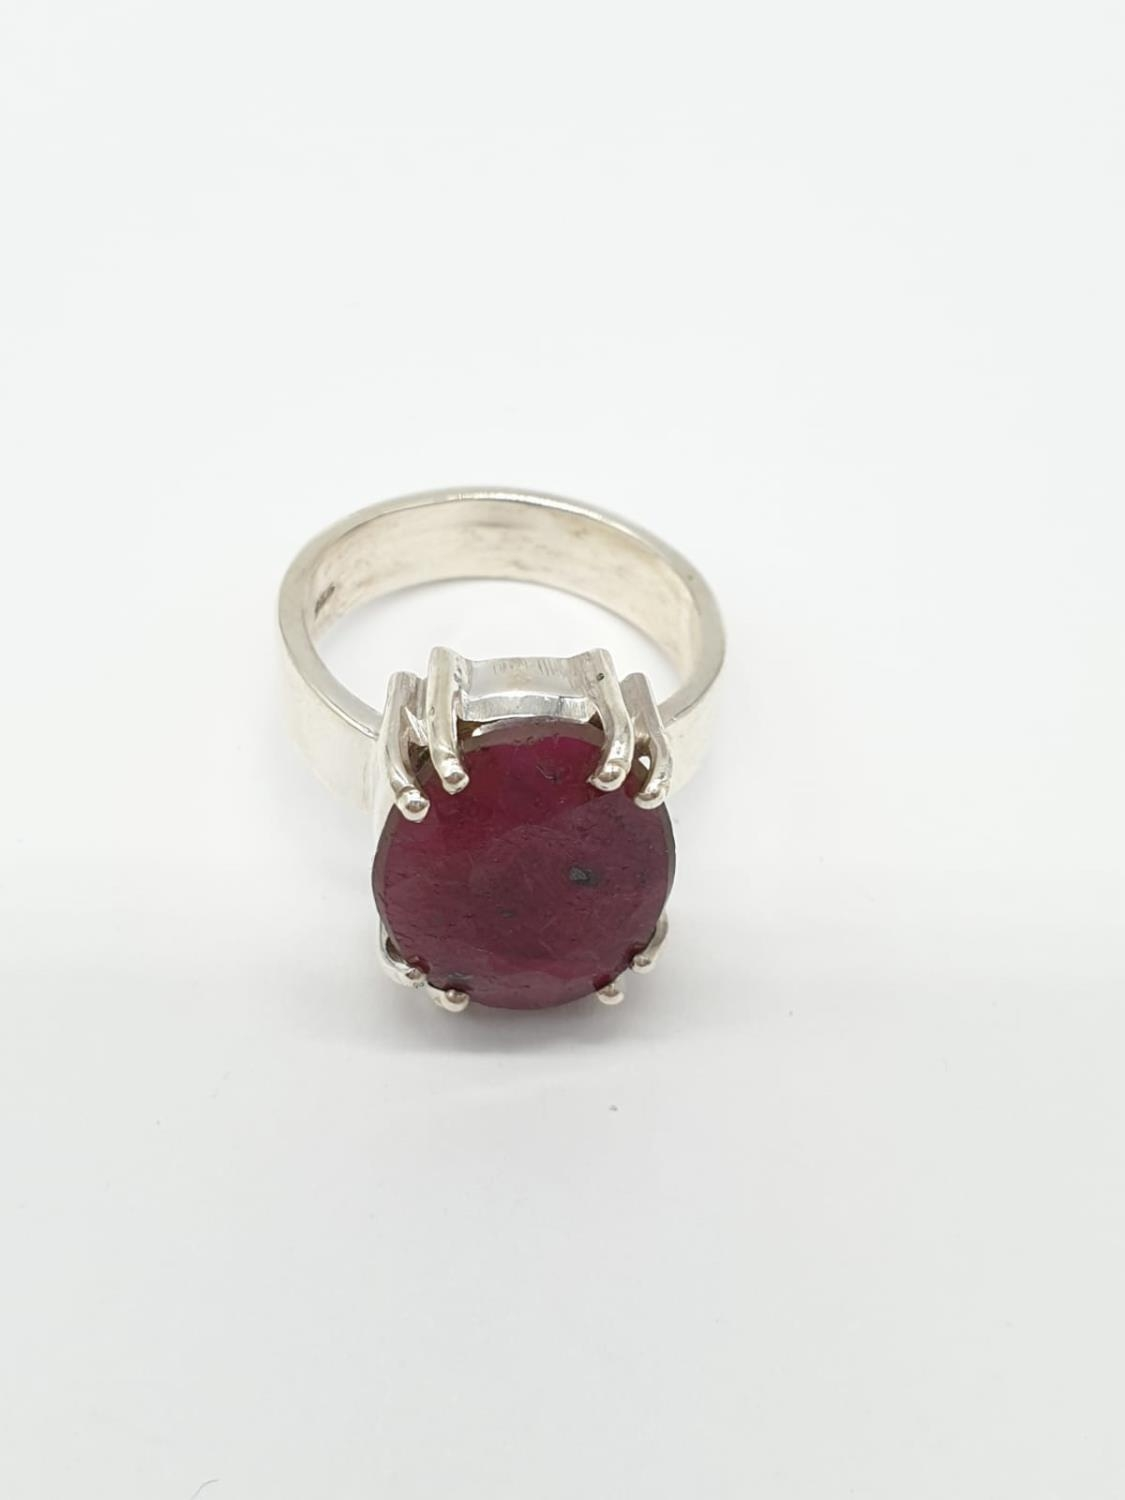 Dressed ruby silver N size ring